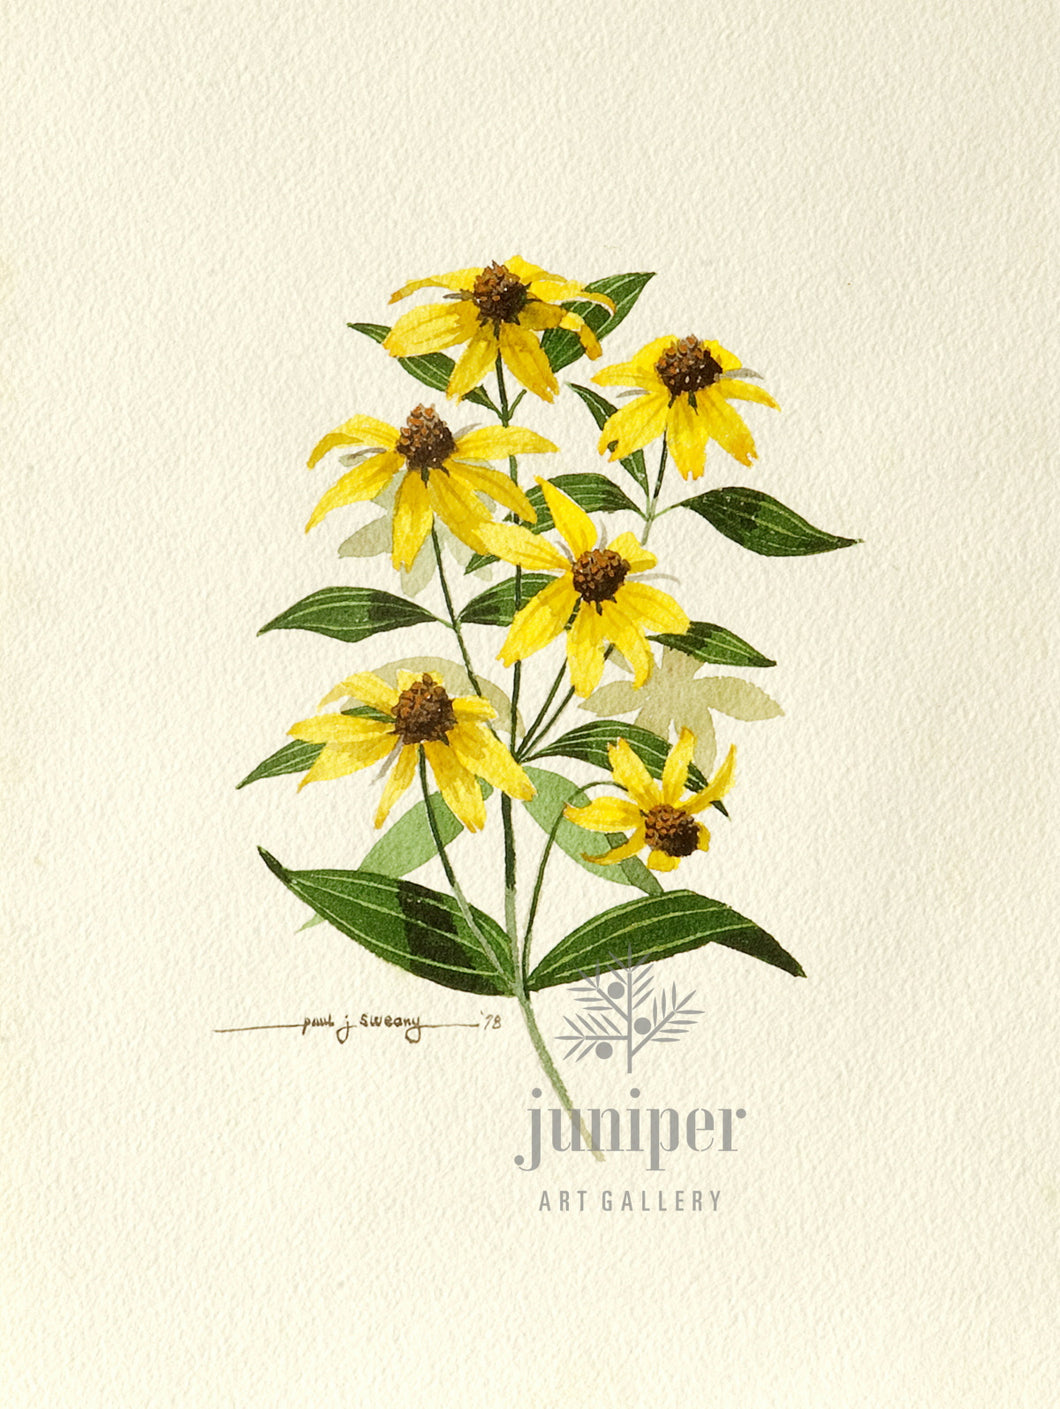 Black Eyed Susans, giclee reproduction from original watercolor (1978) by Paul J Sweany